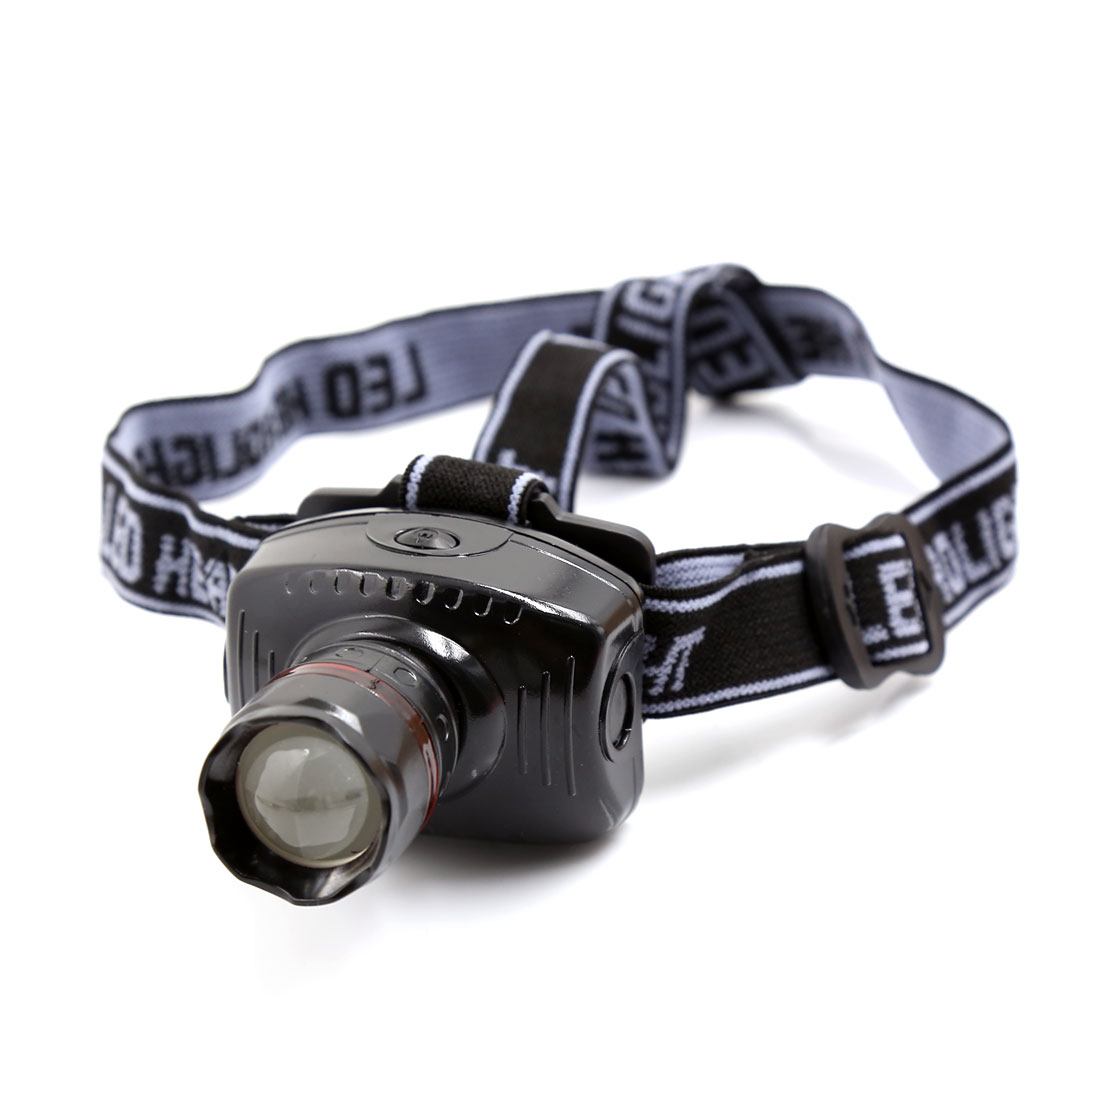 Outdoor Camping Hiking Elastic Headstrap White LED Zoomable Headlight Headlamp